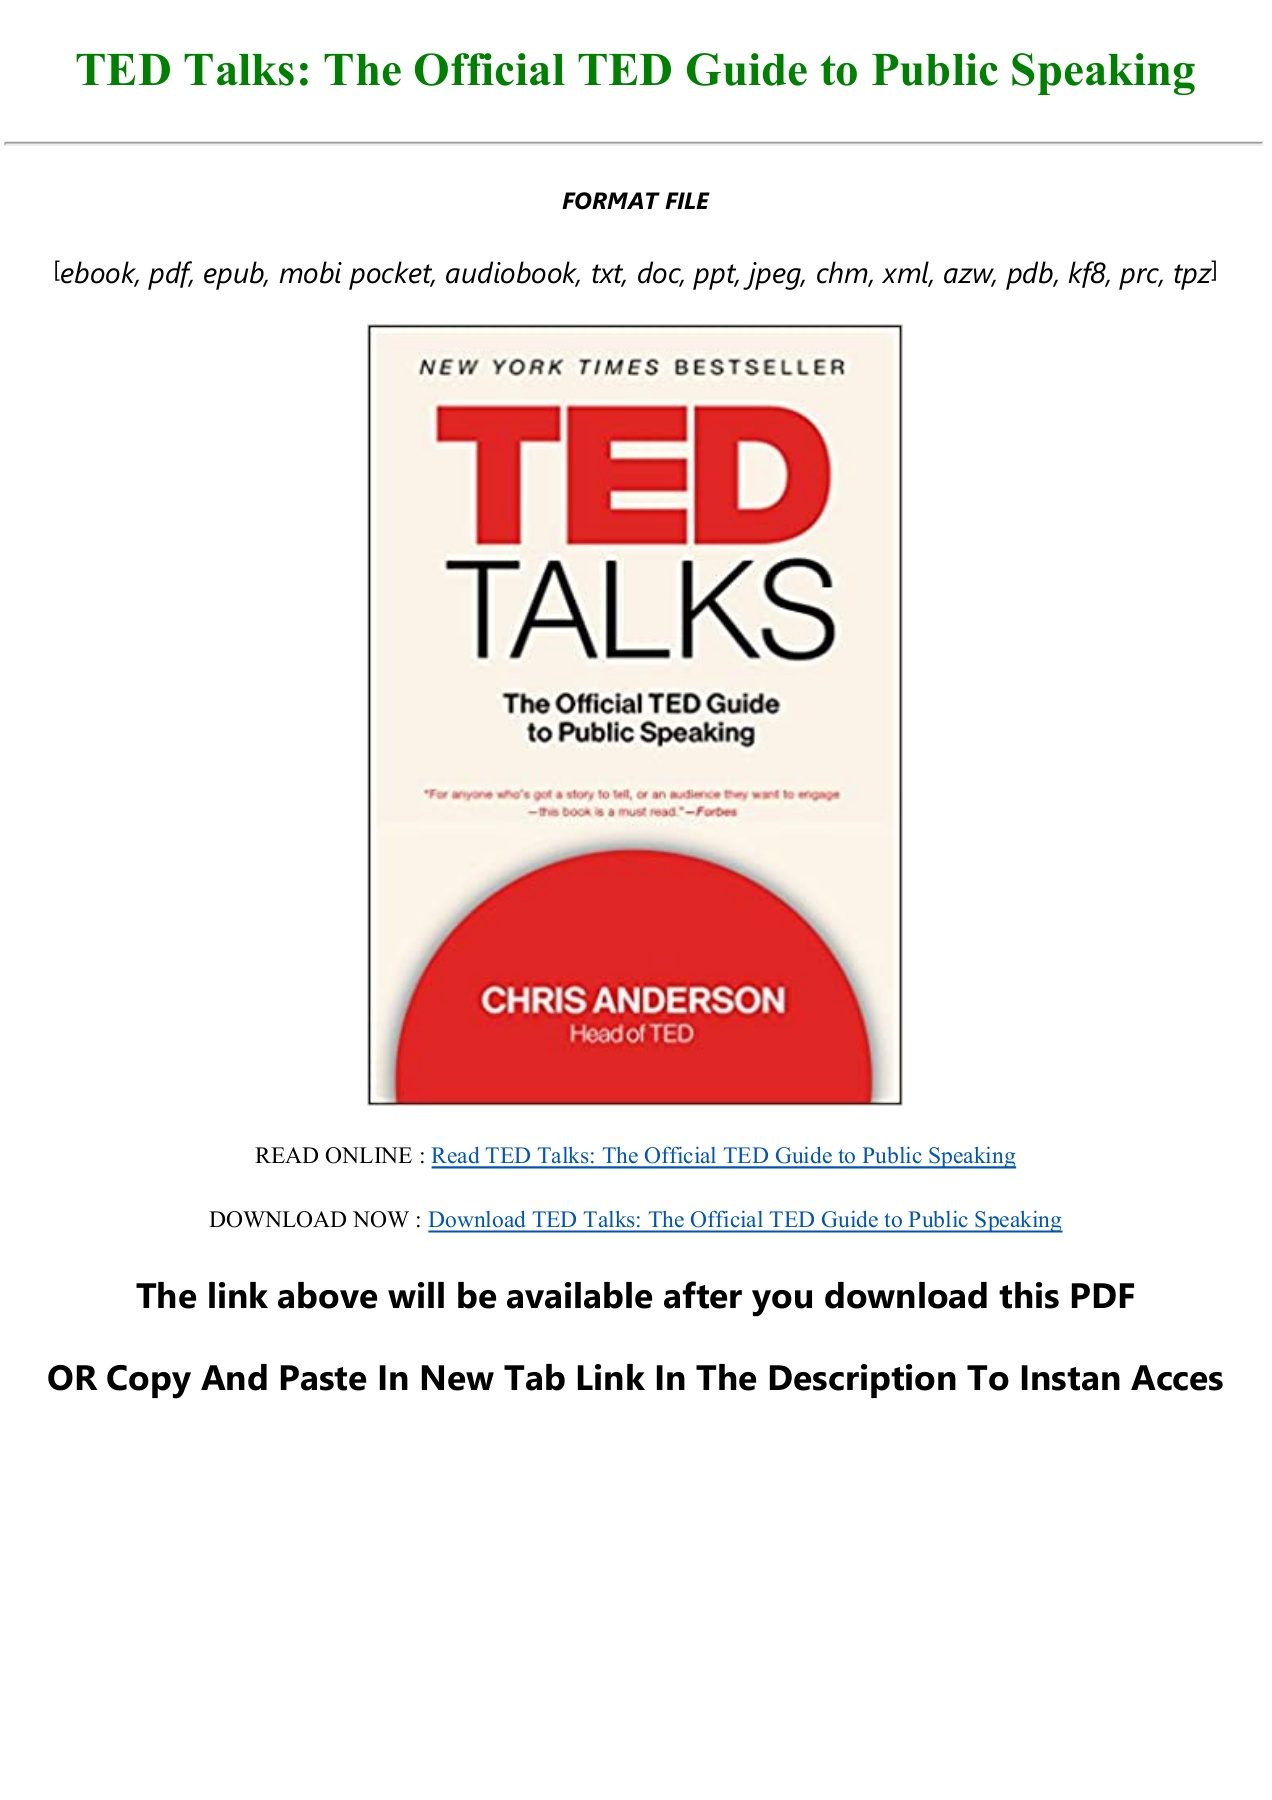 download !pdf ted talks: the official ted guide to public speaking pre order  anyflip